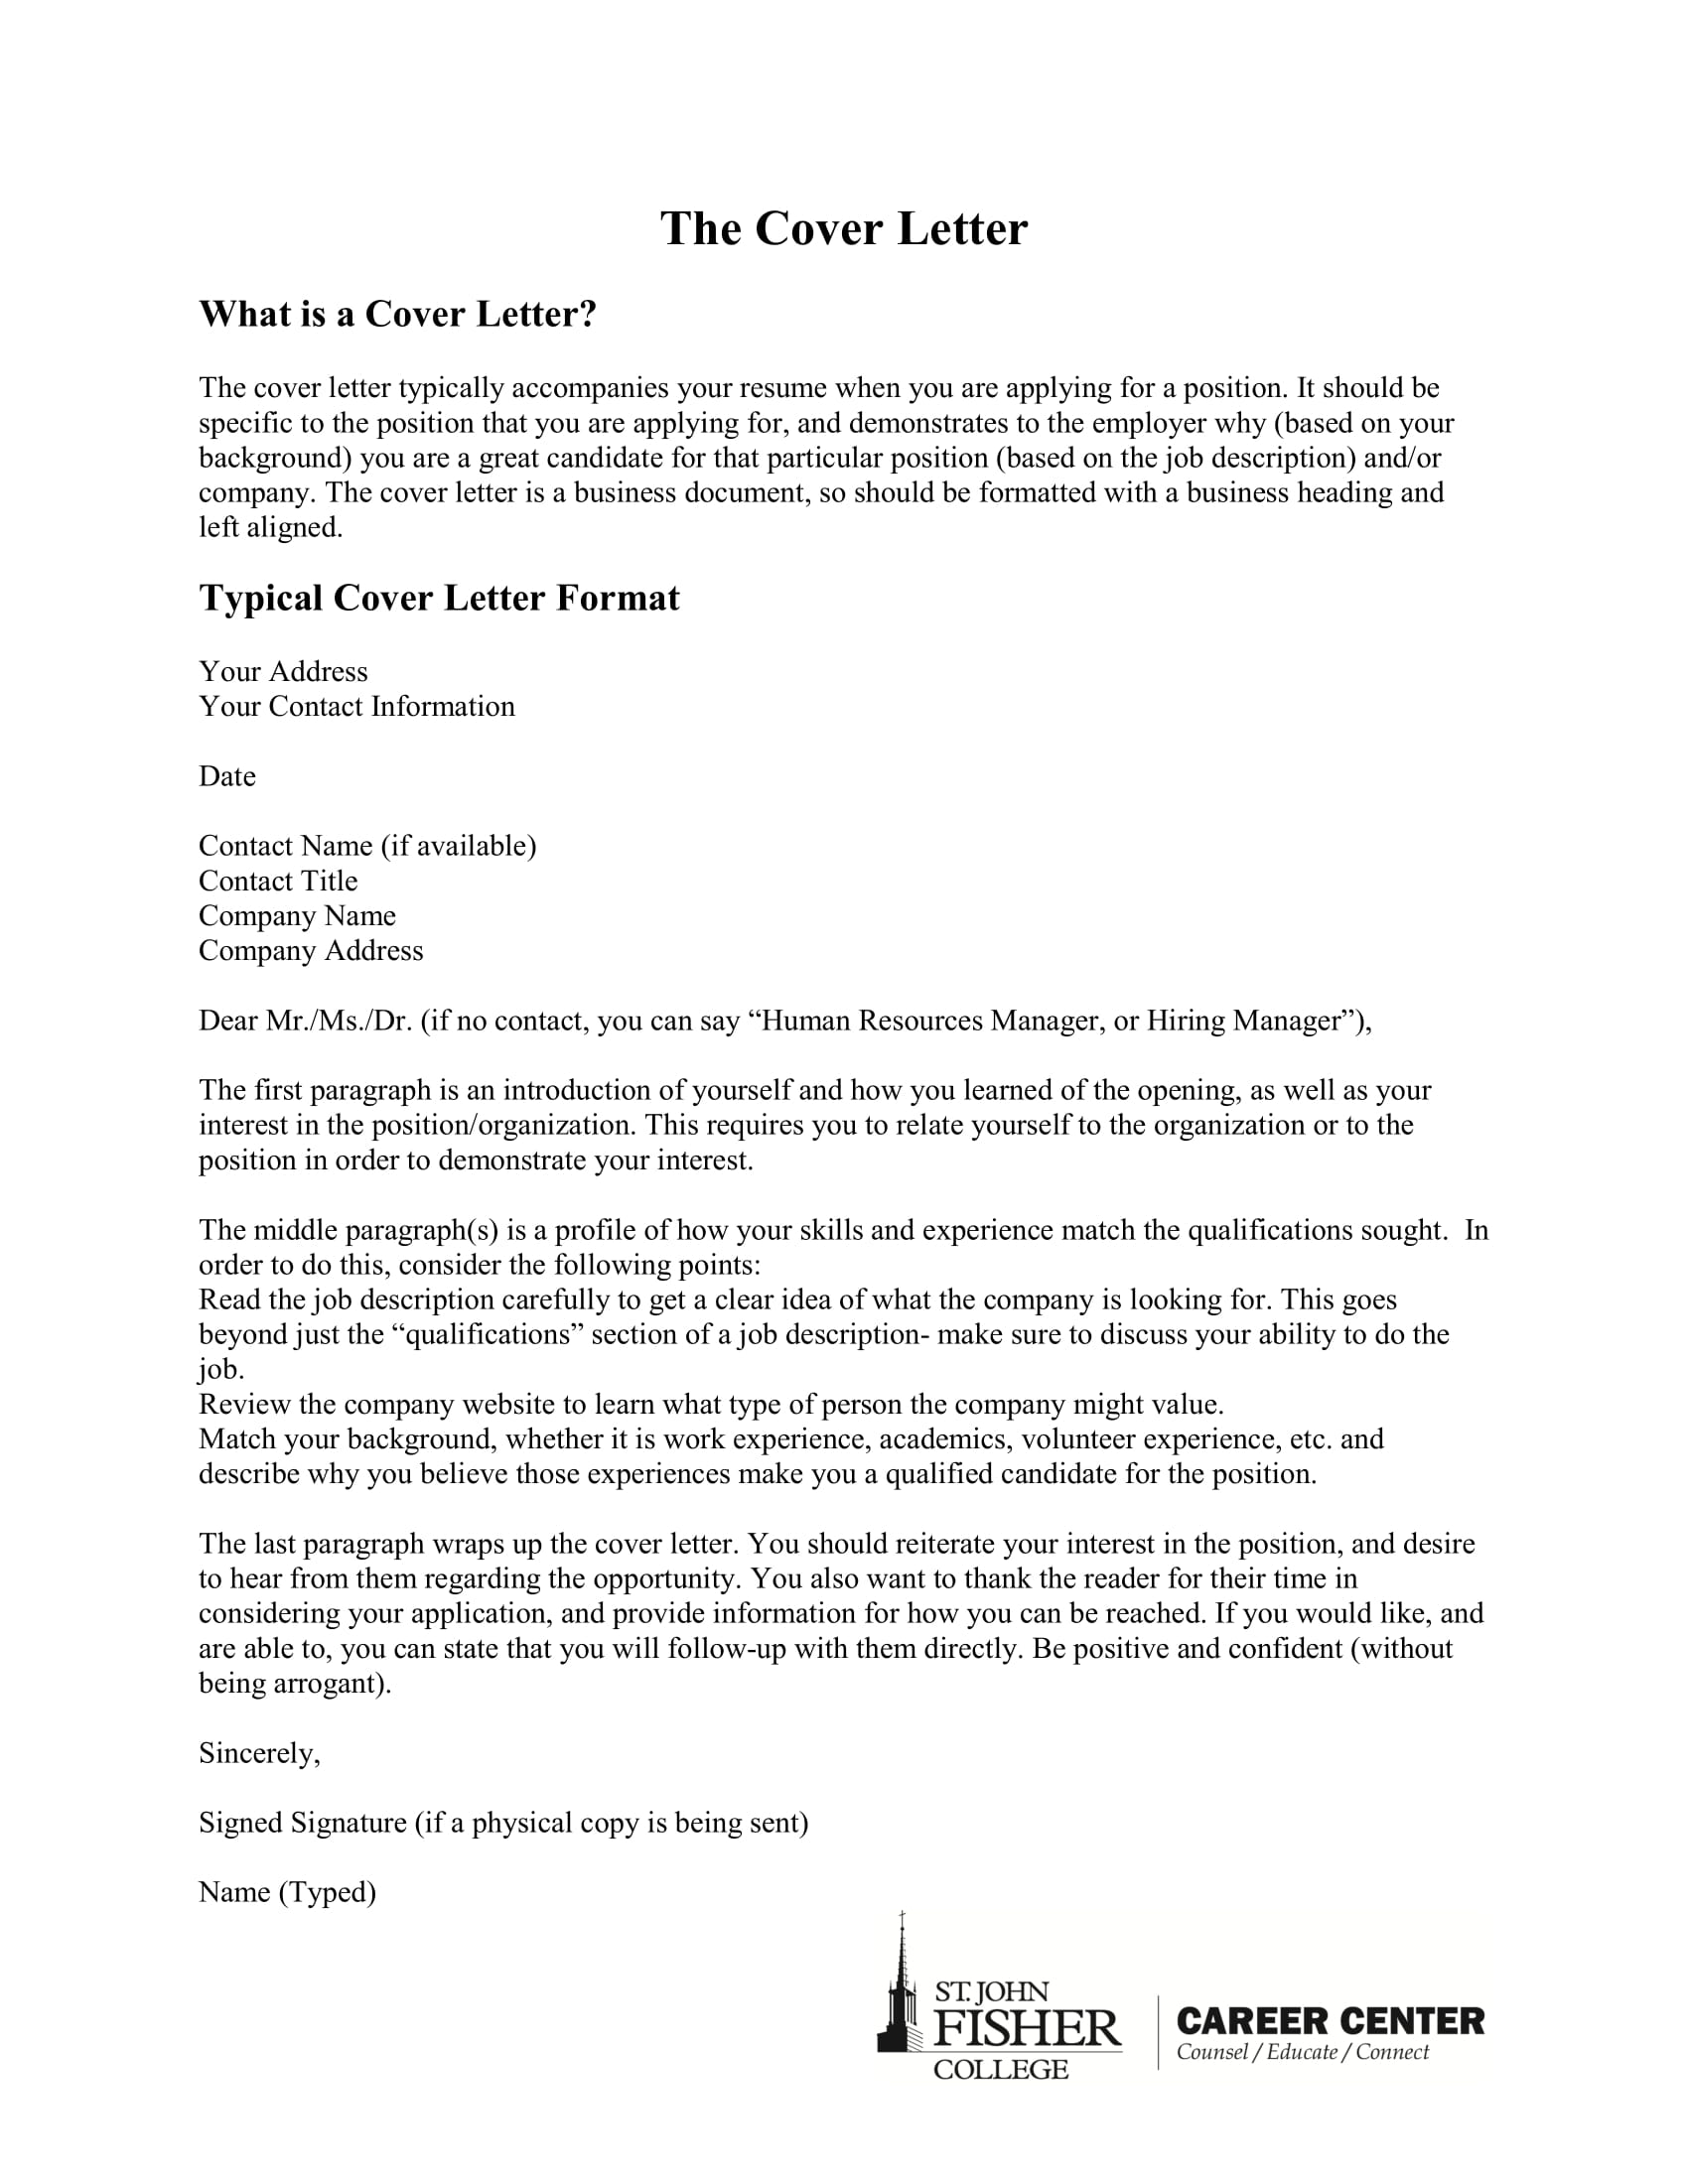 Job Cover Letter Example 19 Job Application Letter Examples Pdf Examples